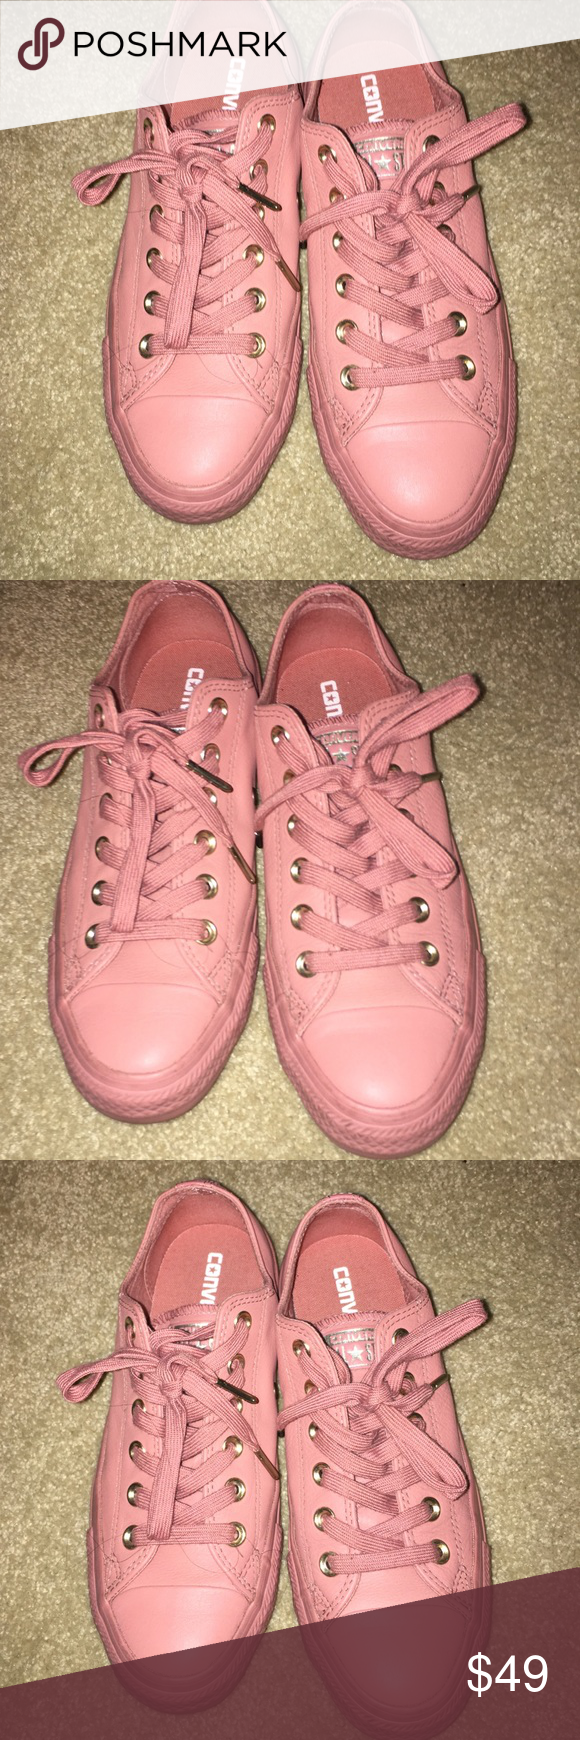 43292717786a Converse chuck taylor all star leather sneakers Color  Desert Sand (Pink mauve  color